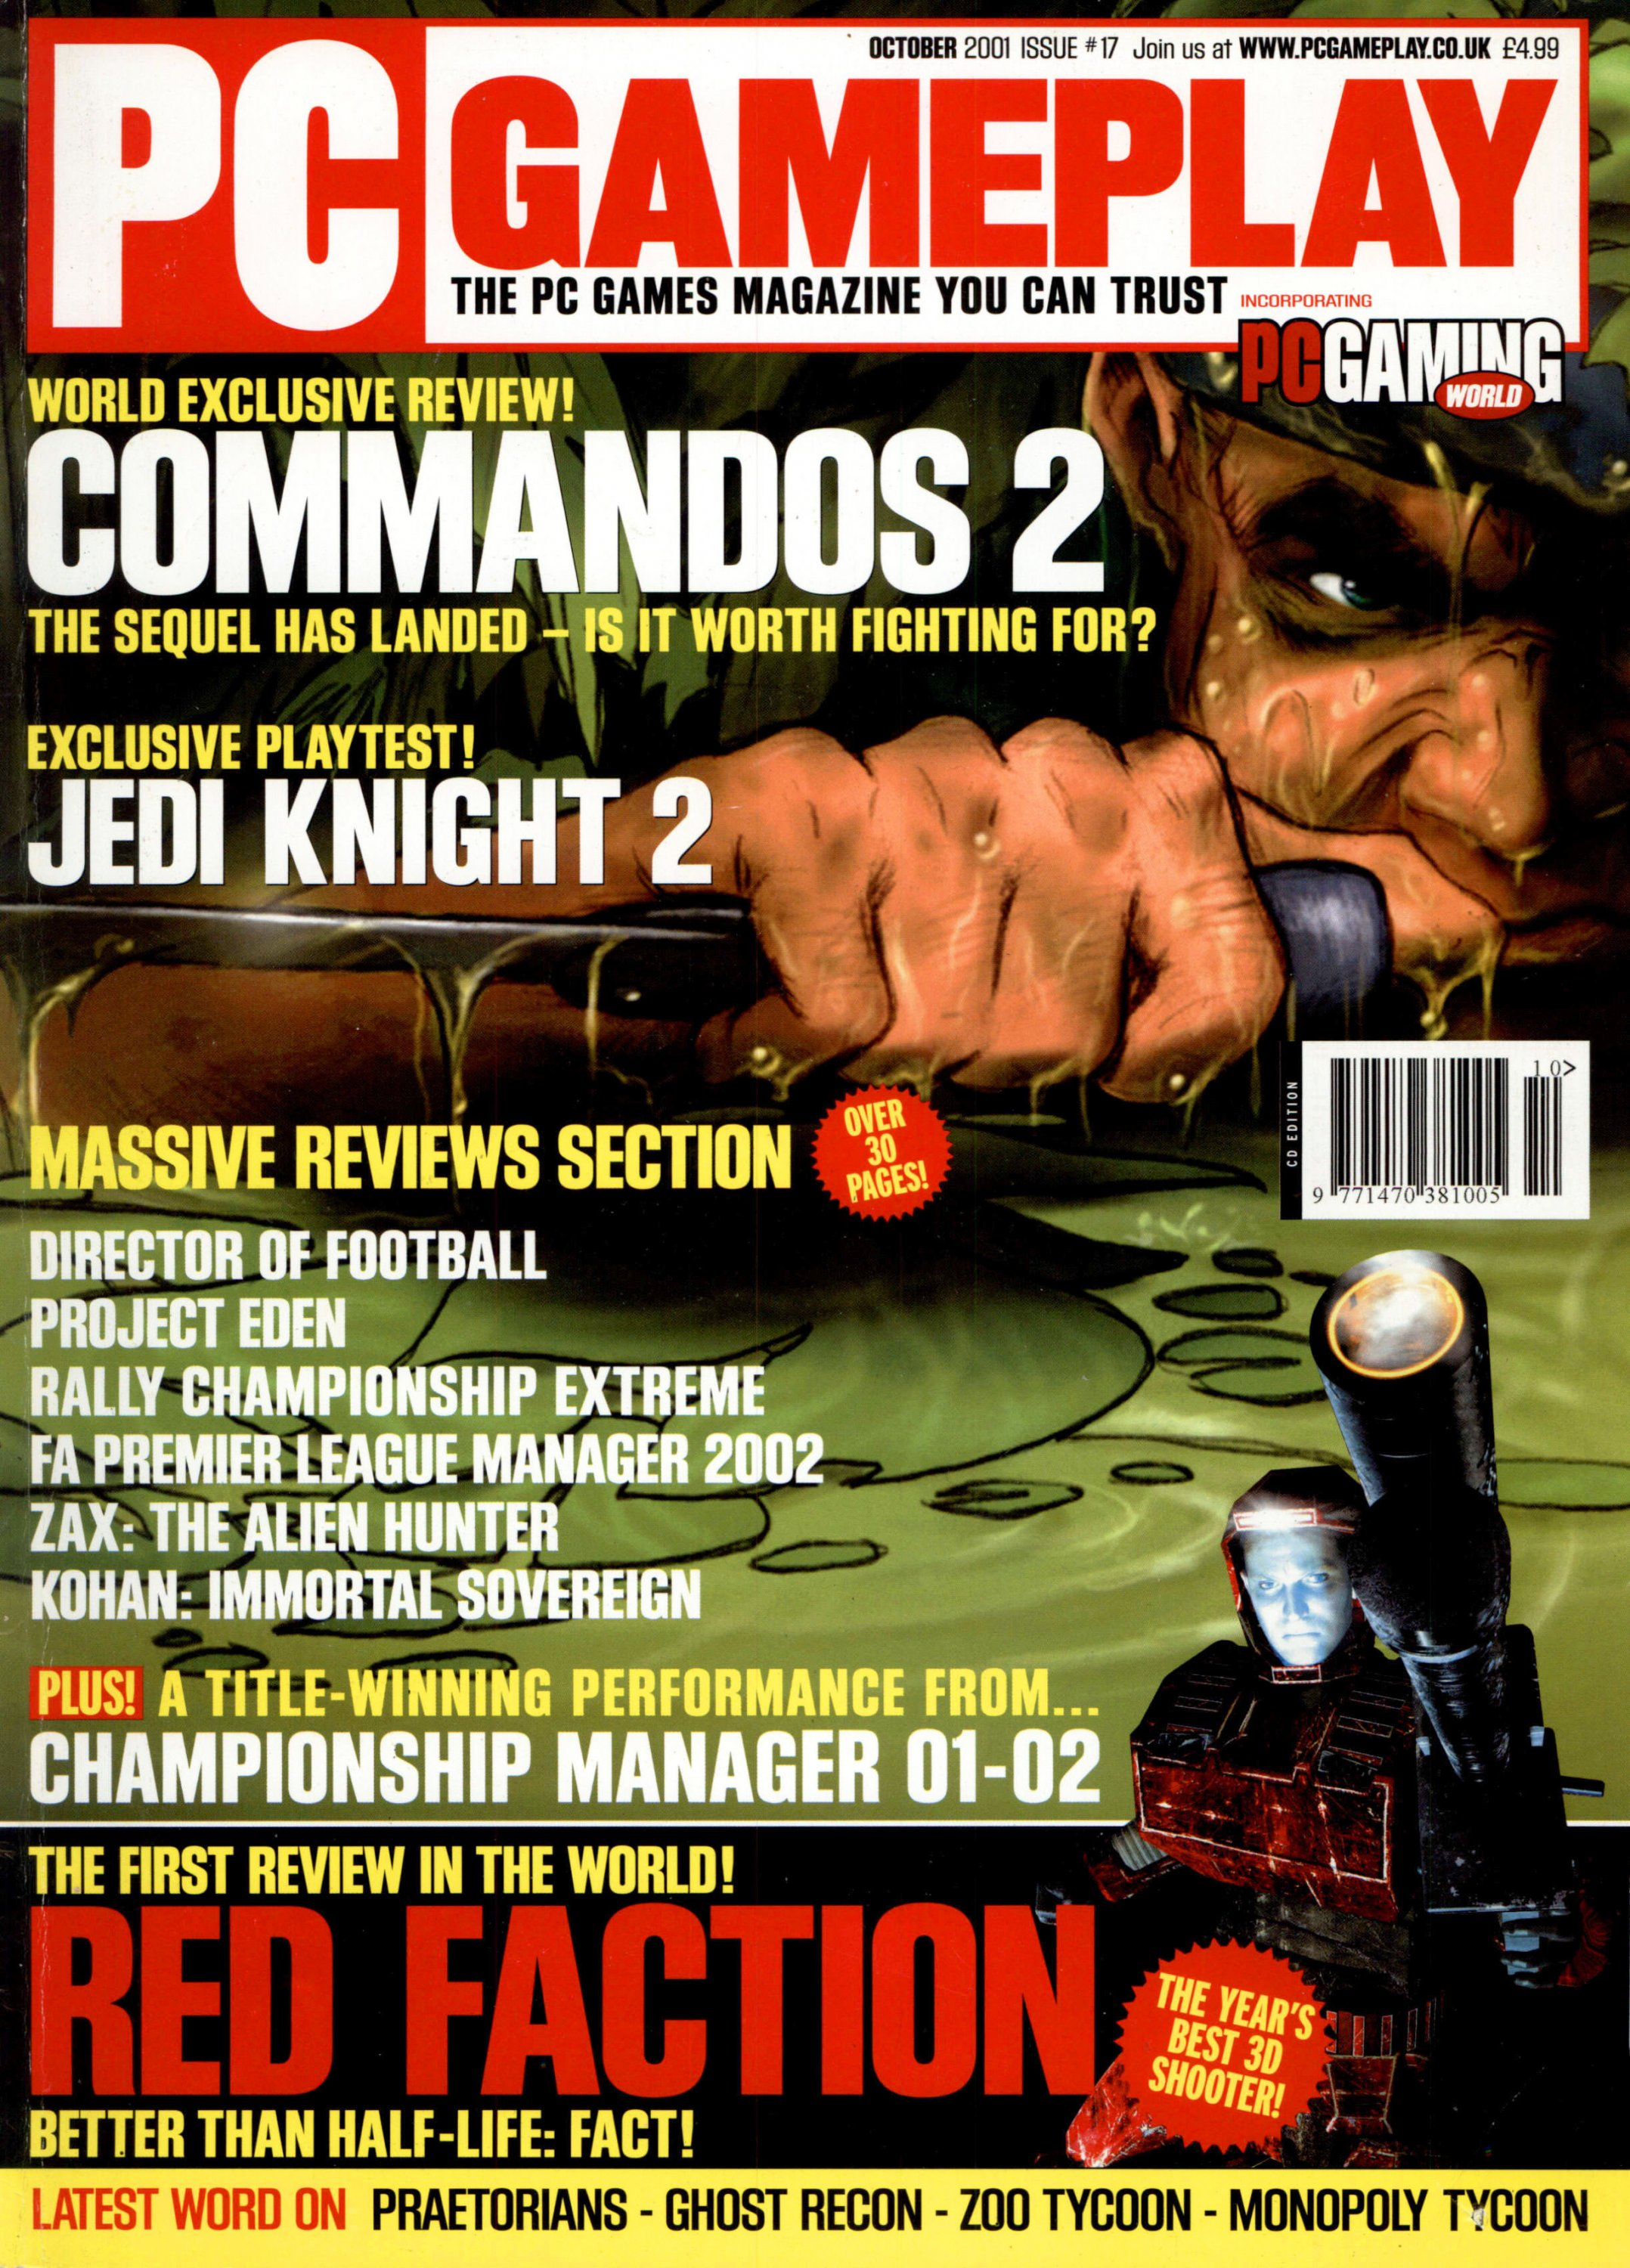 PC Gameplay Issue 17 (October 2001)